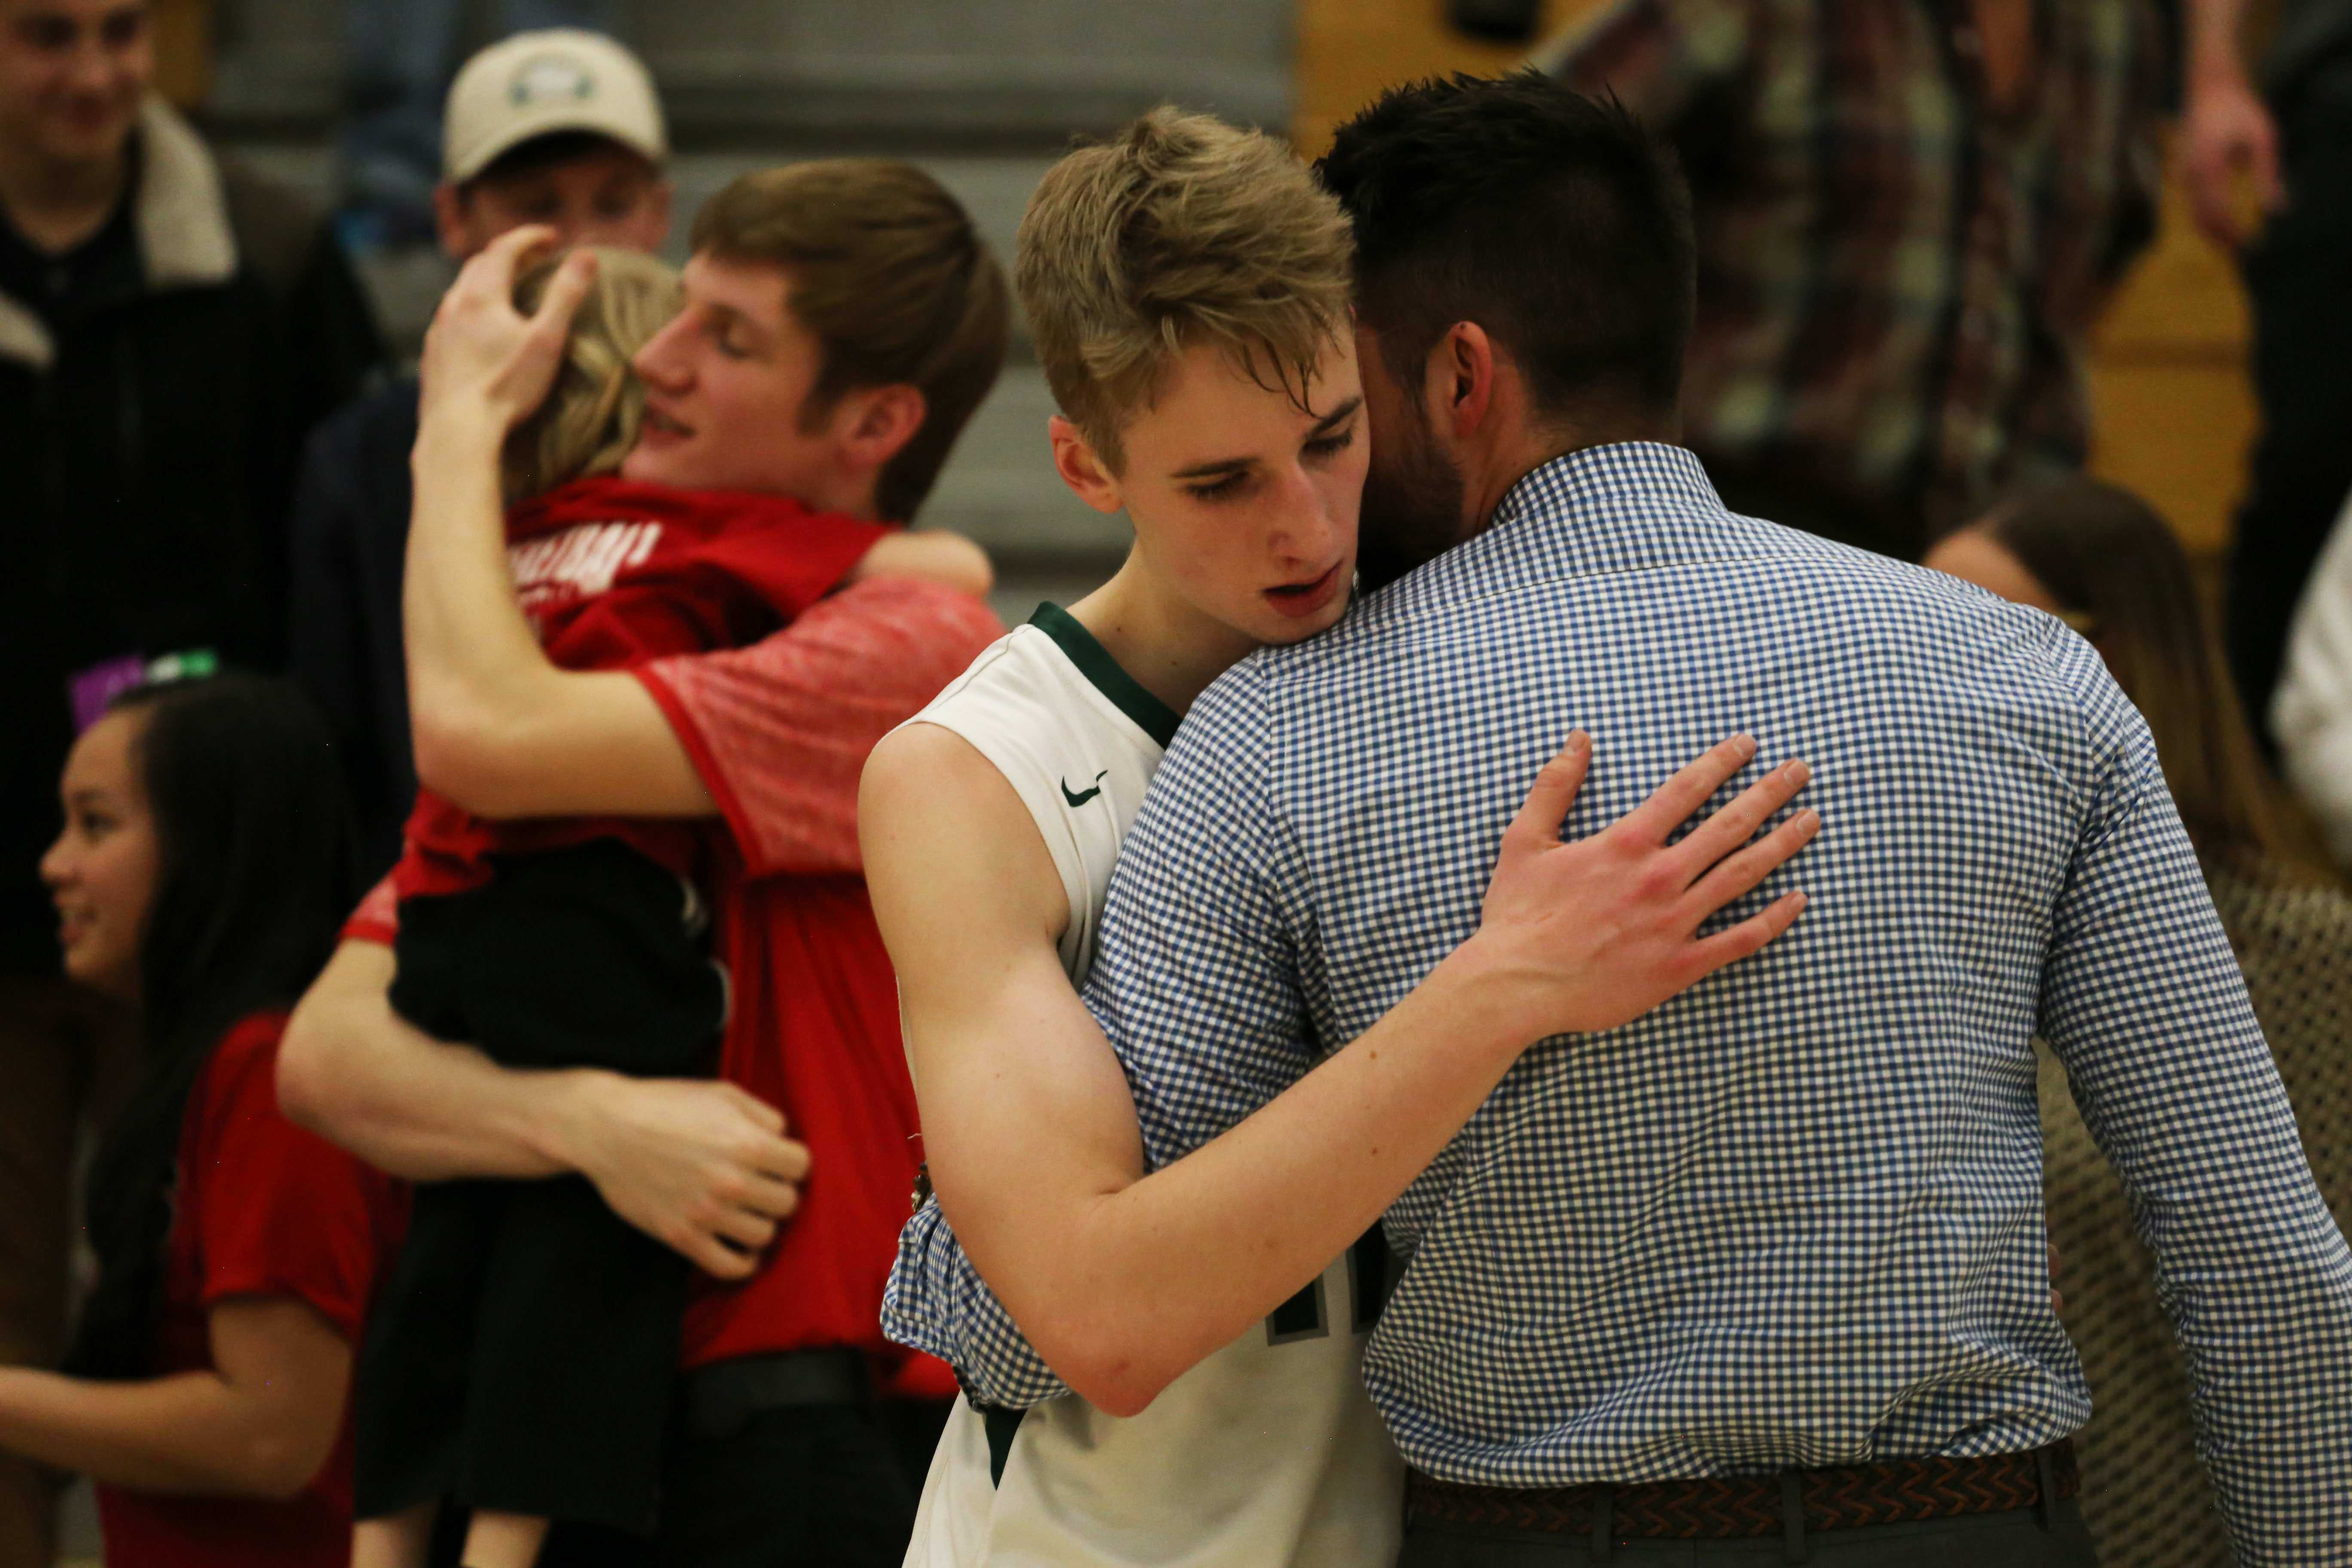 Senior Kellen Ireland hears words of encouragement and consolation from Coach Eric Valerio following the first round playoff loss to Glenwood Springs on Wednesday, February 22.